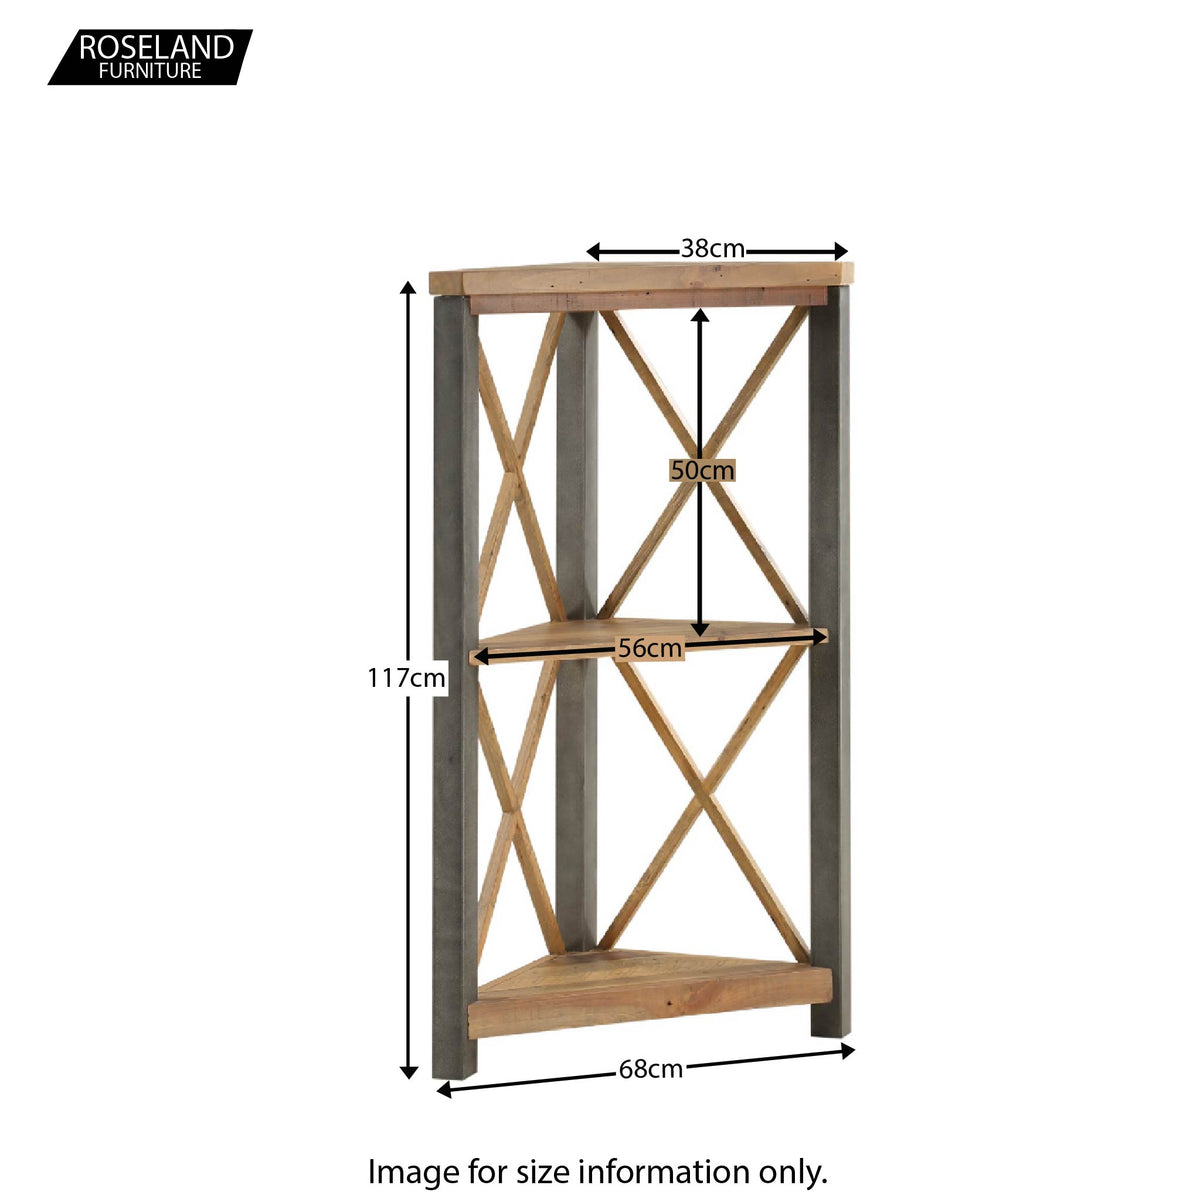 Urban Elegance Small Corner Bookcase -  Additional Size Guide